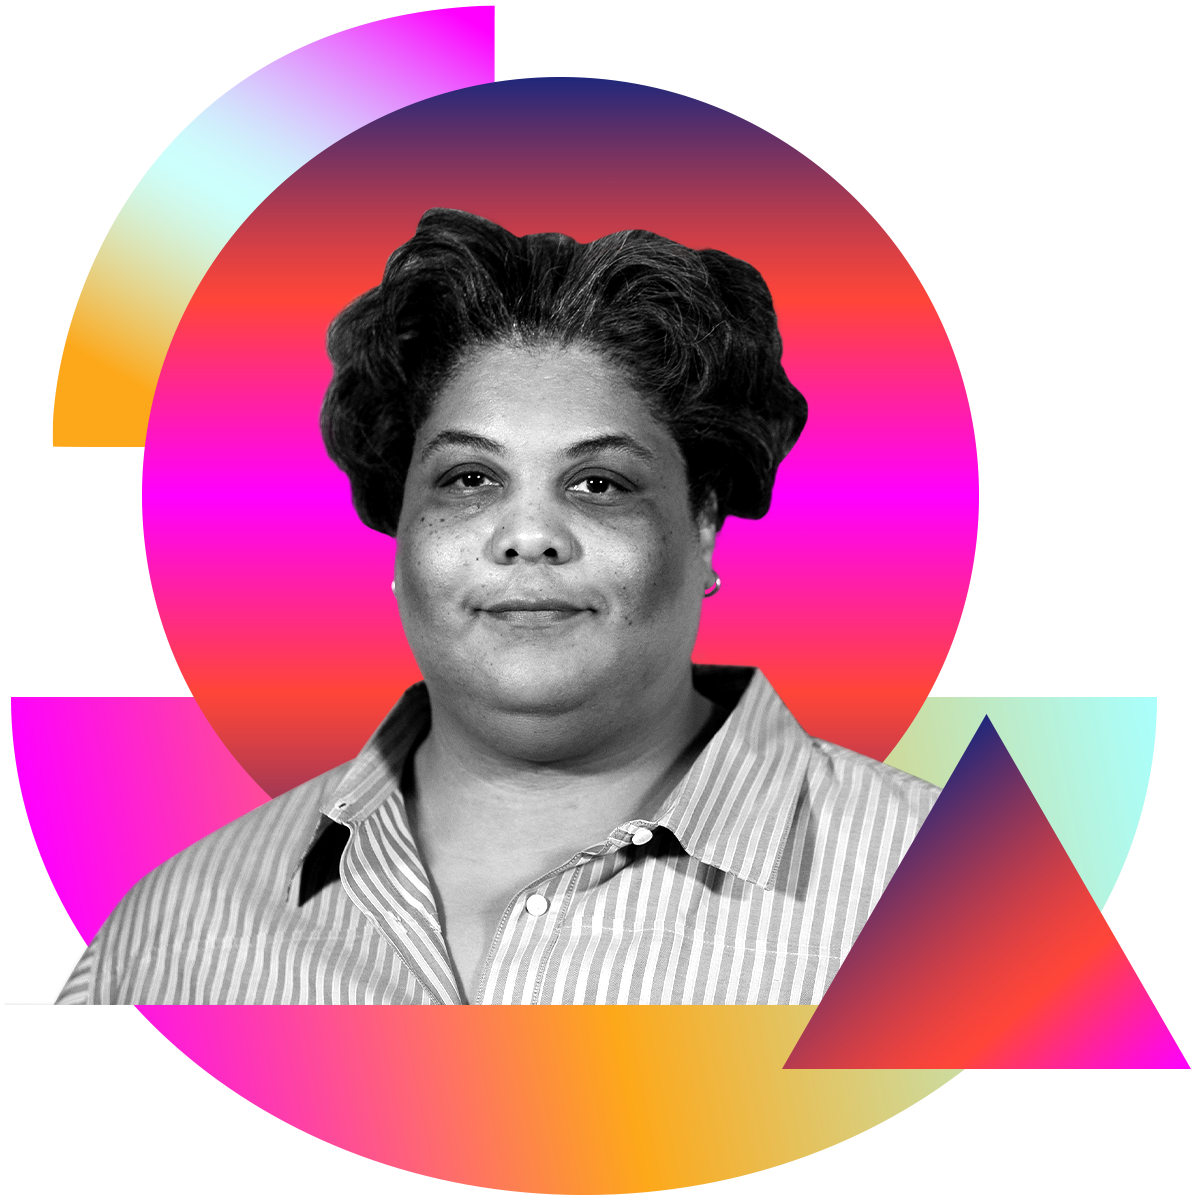 Photo illustration of Roxane Gay in black and white surrounded by colored gradients